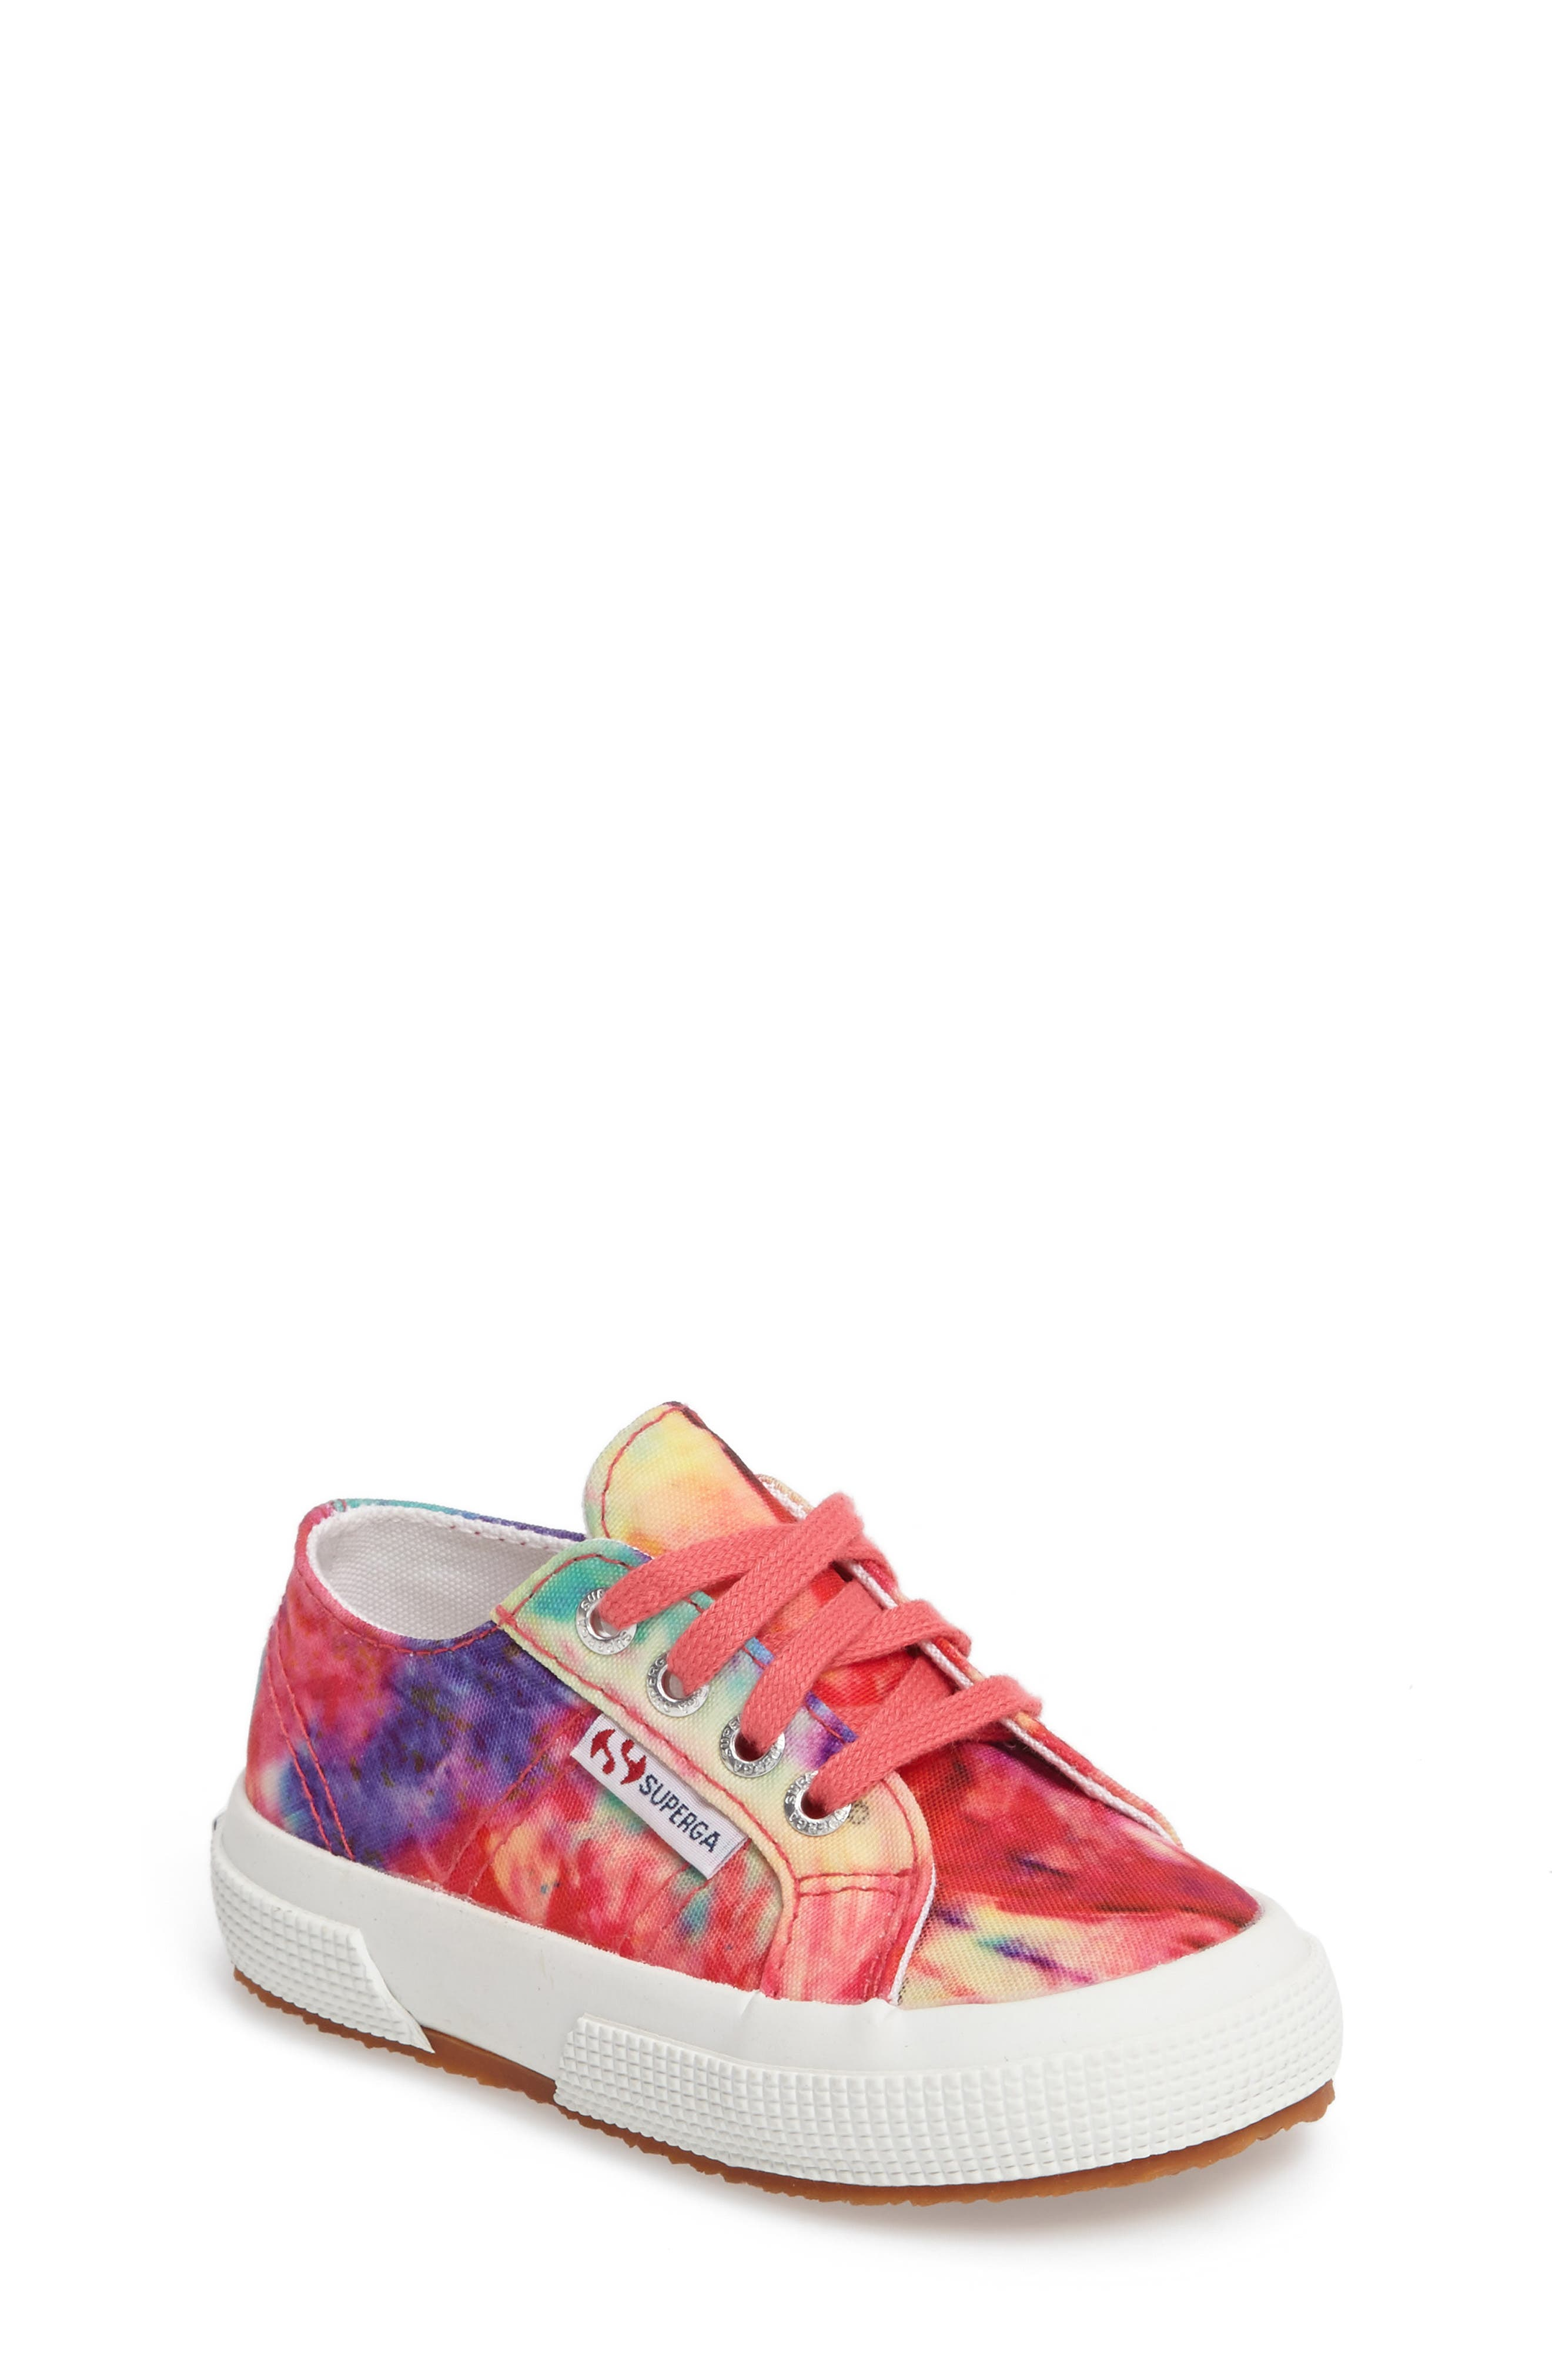 Superga Tie Dye Classic Sneaker (Walker, Toddler & Little Kid)